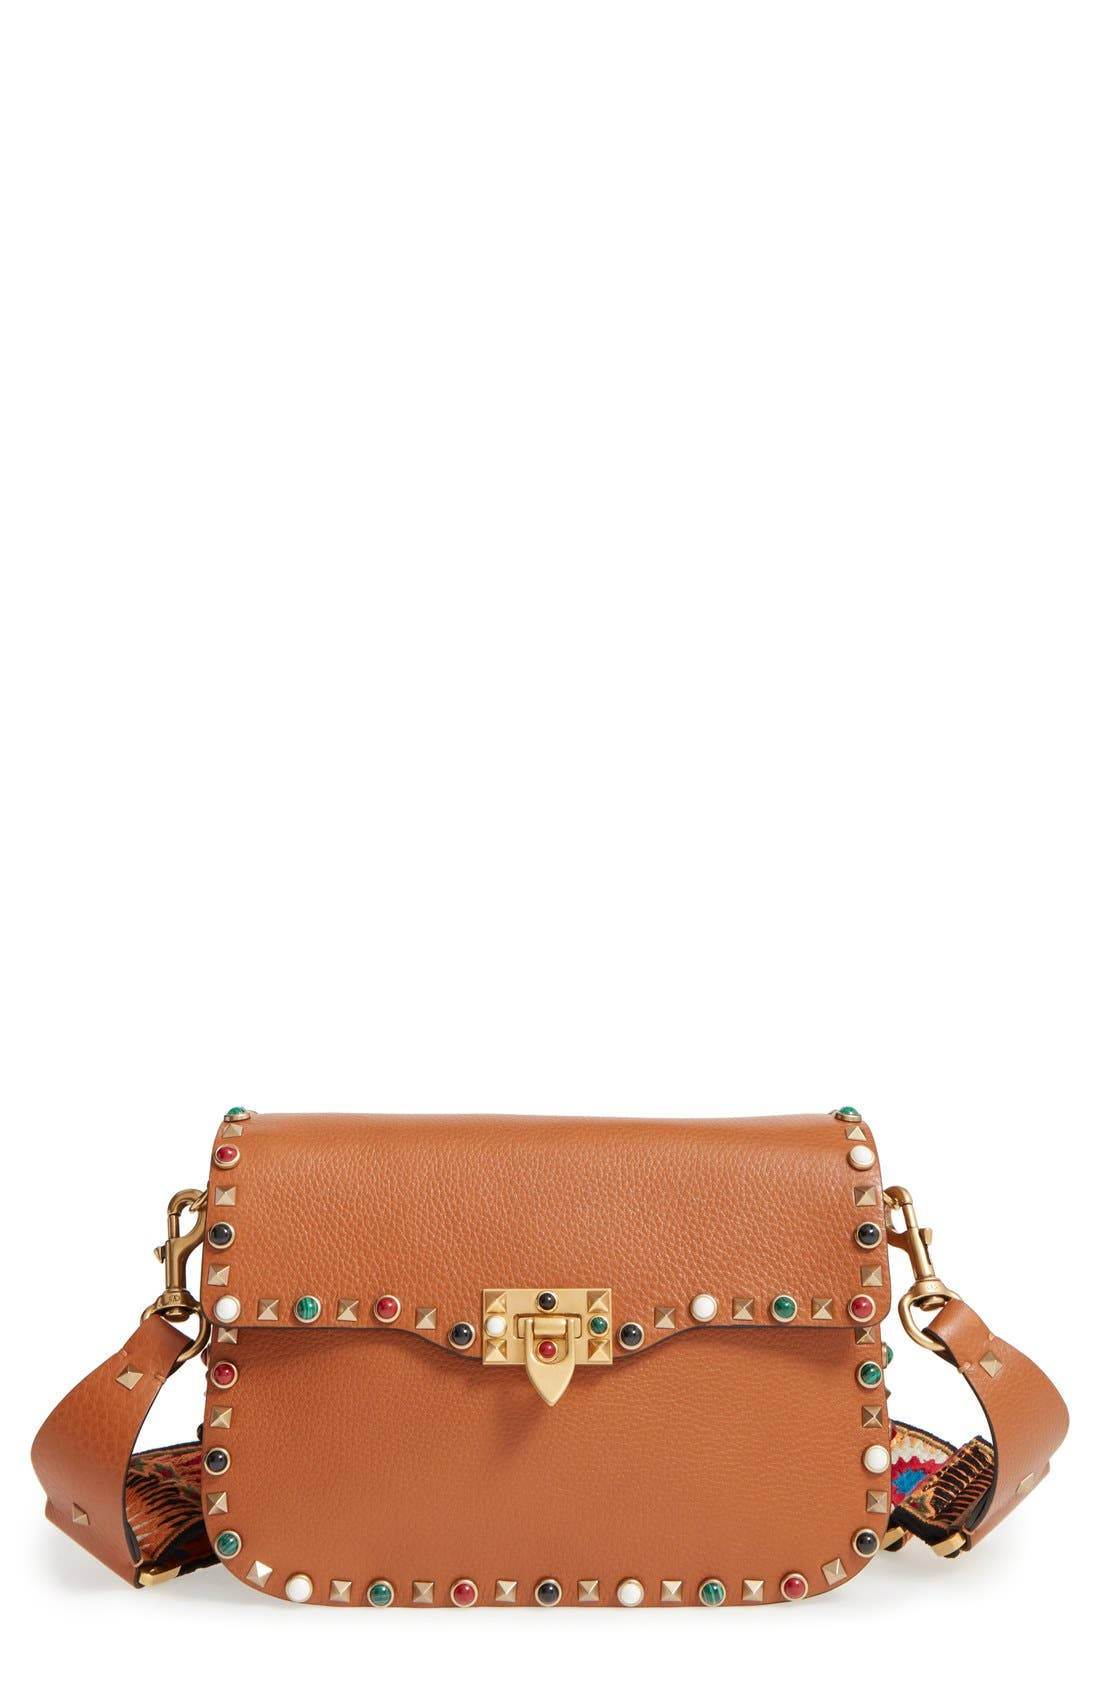 Alternate Image 1 Selected - Valentino 'Rolling Rockstud' Guitar Strap Calfskin Leather Shoulder Bag